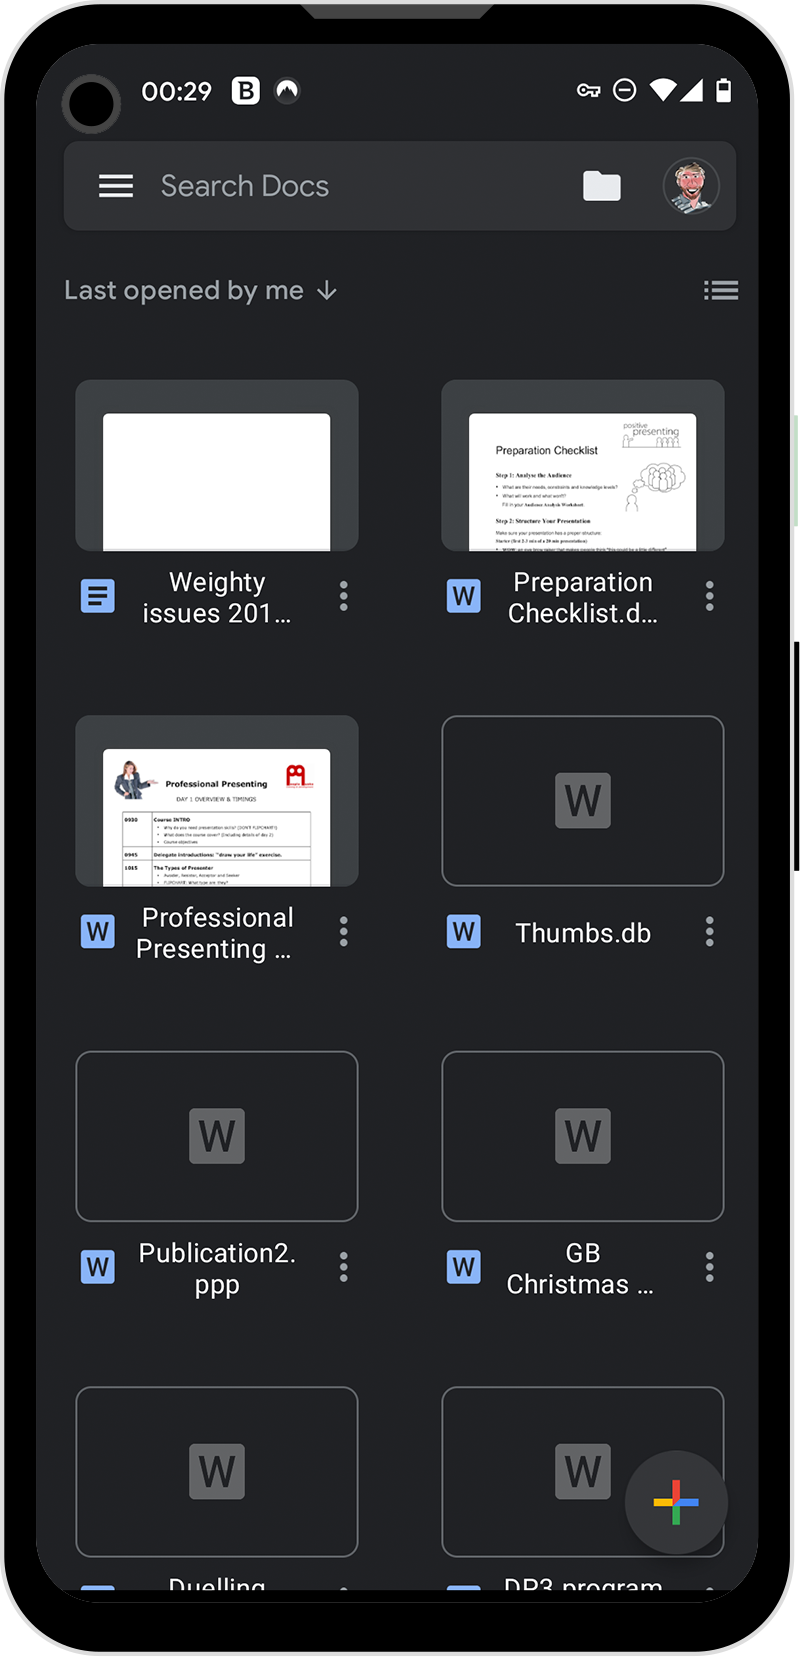 Google Docs on an Android phone